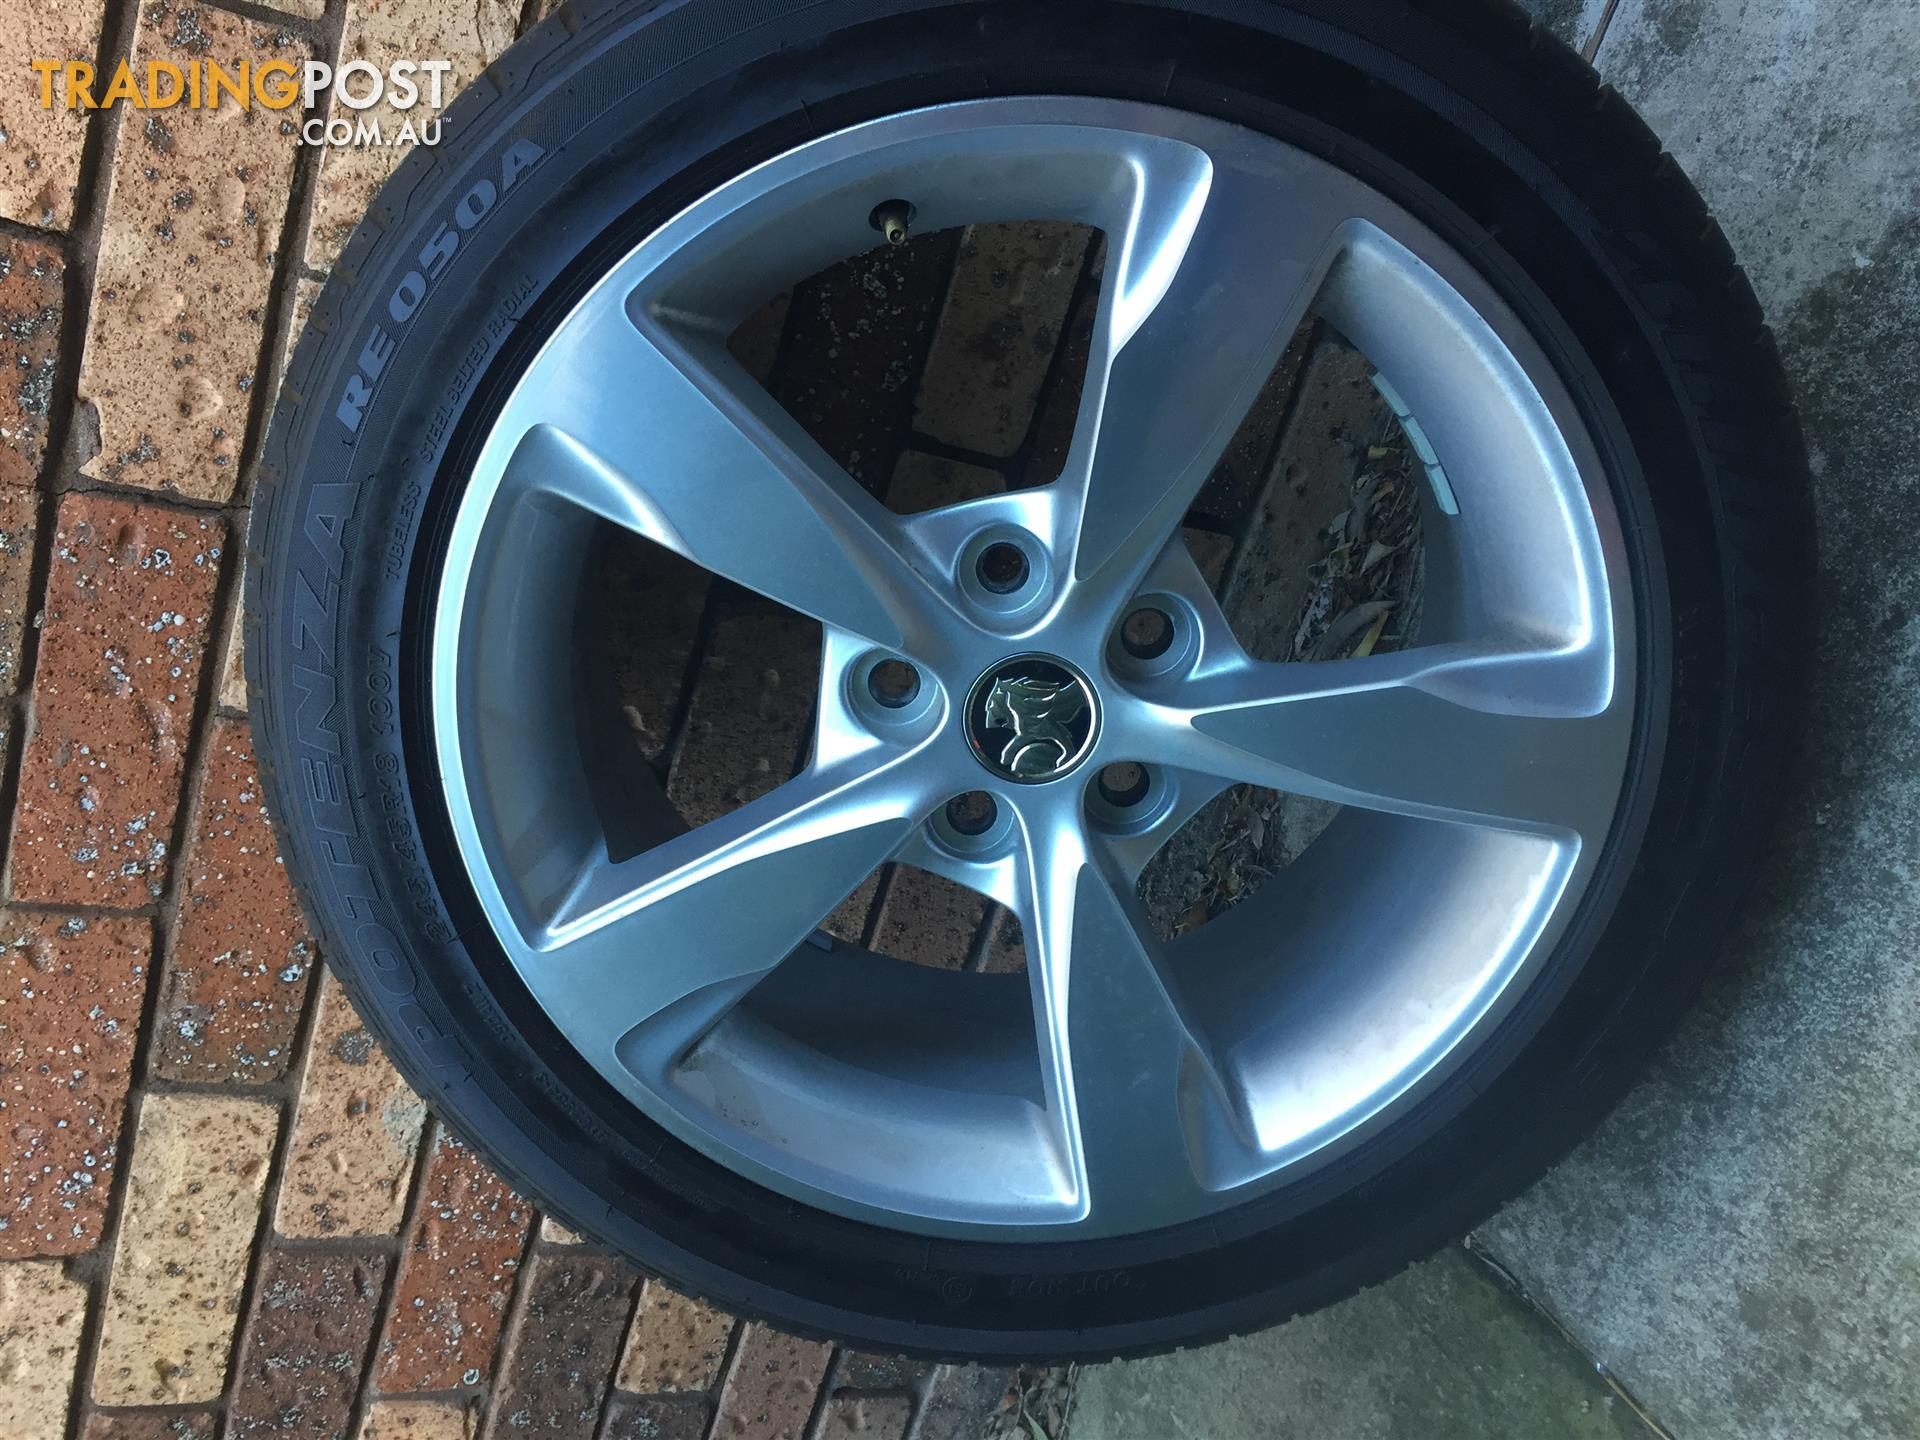 Brand New Holden Commodore Wheels and Tyres Genuine Rims SS SV6 ...